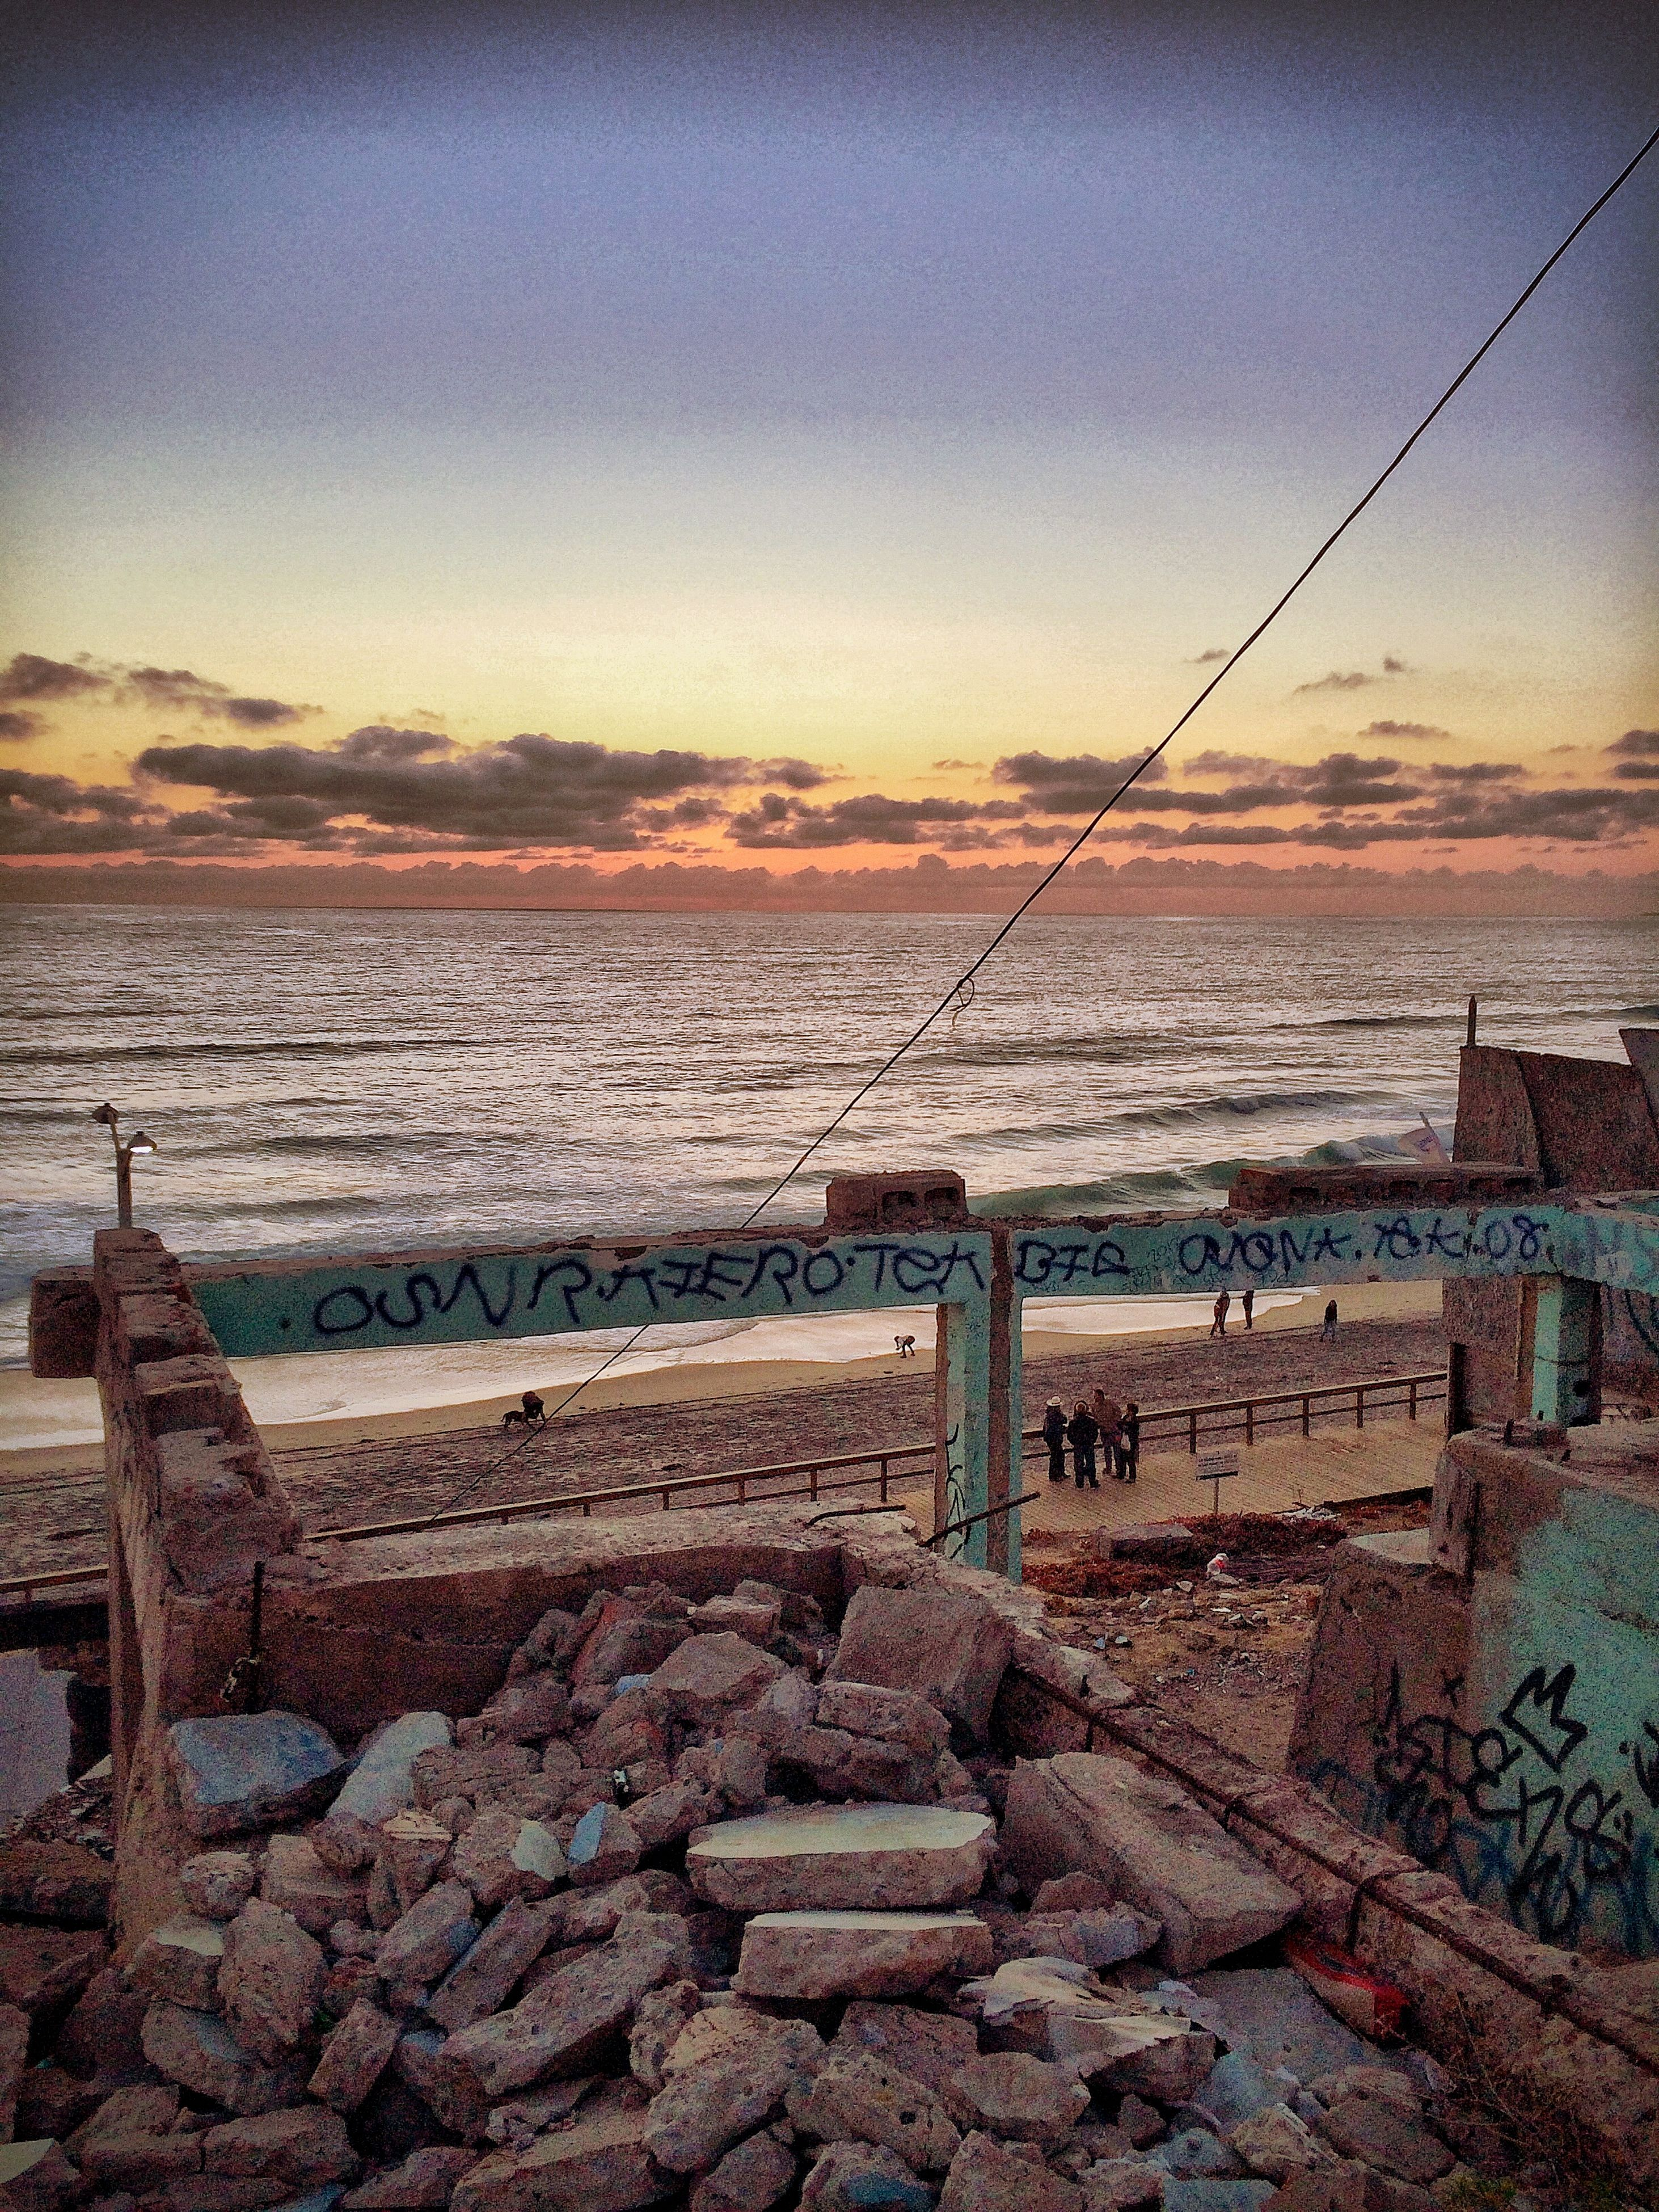 sky, sunset, tranquil scene, tranquility, water, scenics, sea, nature, beach, beauty in nature, landscape, outdoors, horizon over water, fence, no people, idyllic, sunlight, shore, remote, non-urban scene